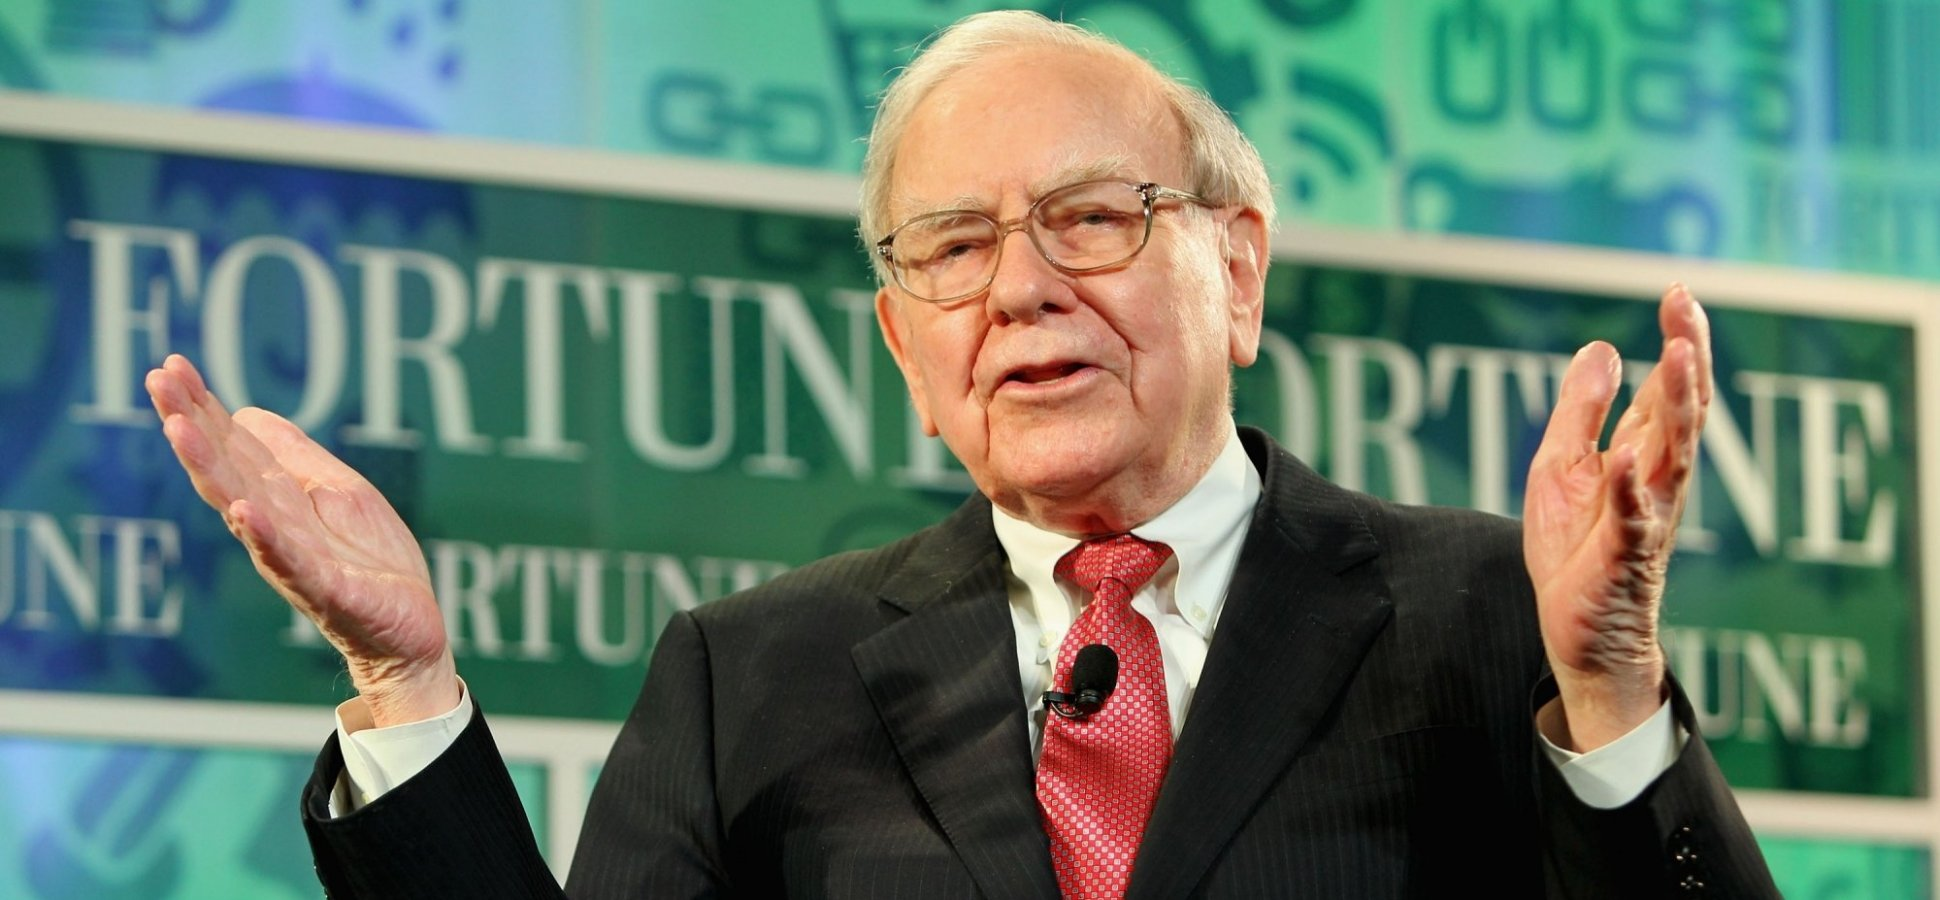 Warren Buffett Once Told a 14-Year-Old Kid the Secret to Success in 1 Simple Sentence